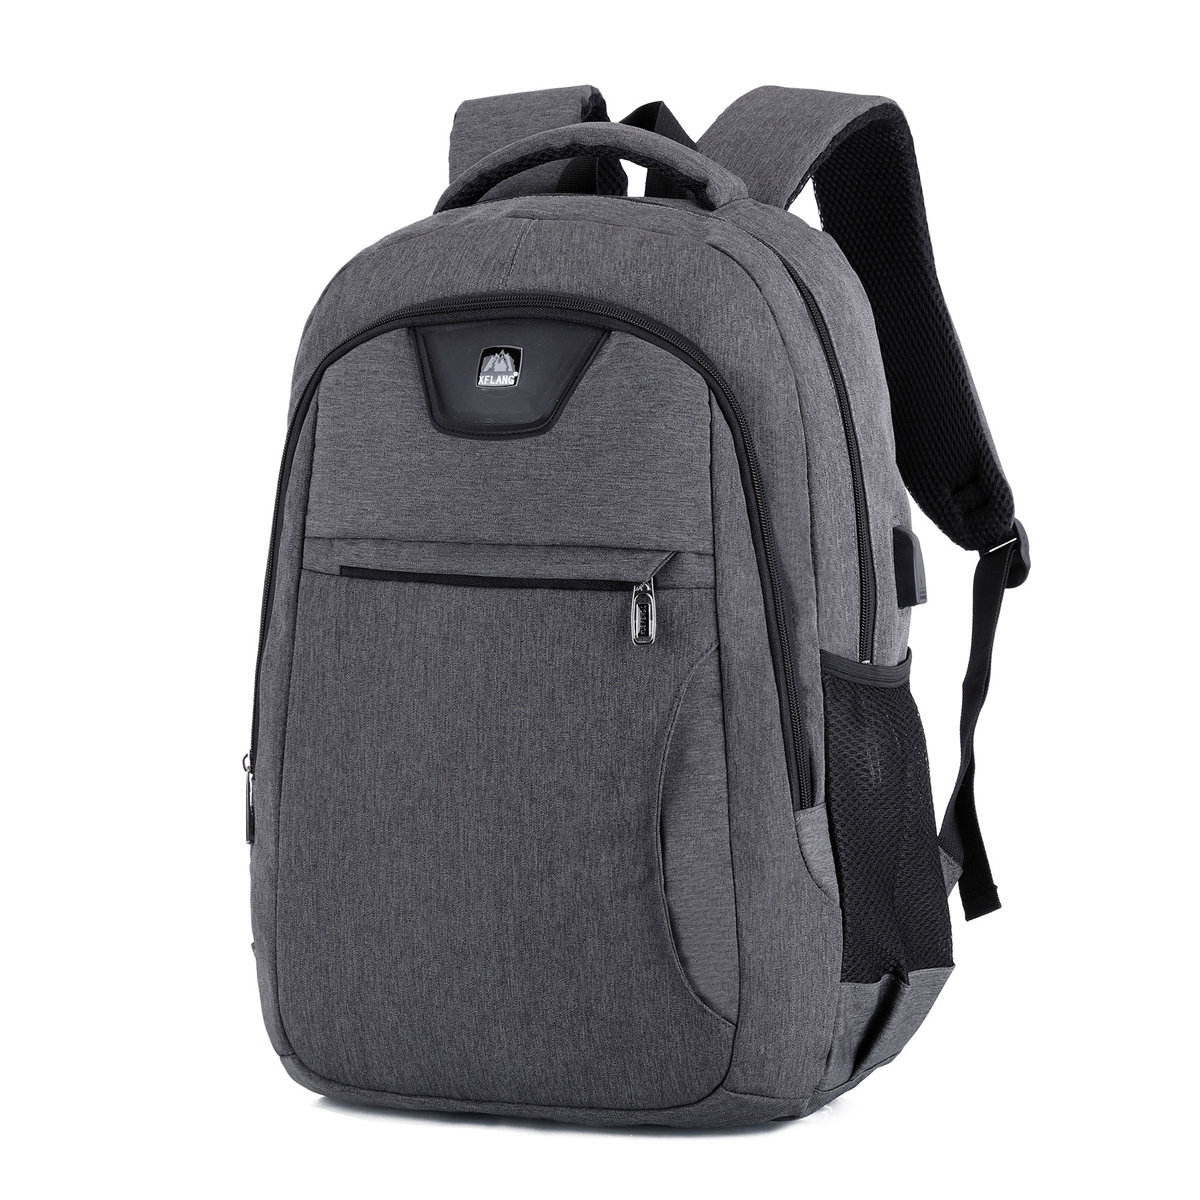 15.6 Inch Mens Waterproof Travel Gear Backpack Laptop Hiking Rucksack School Bag